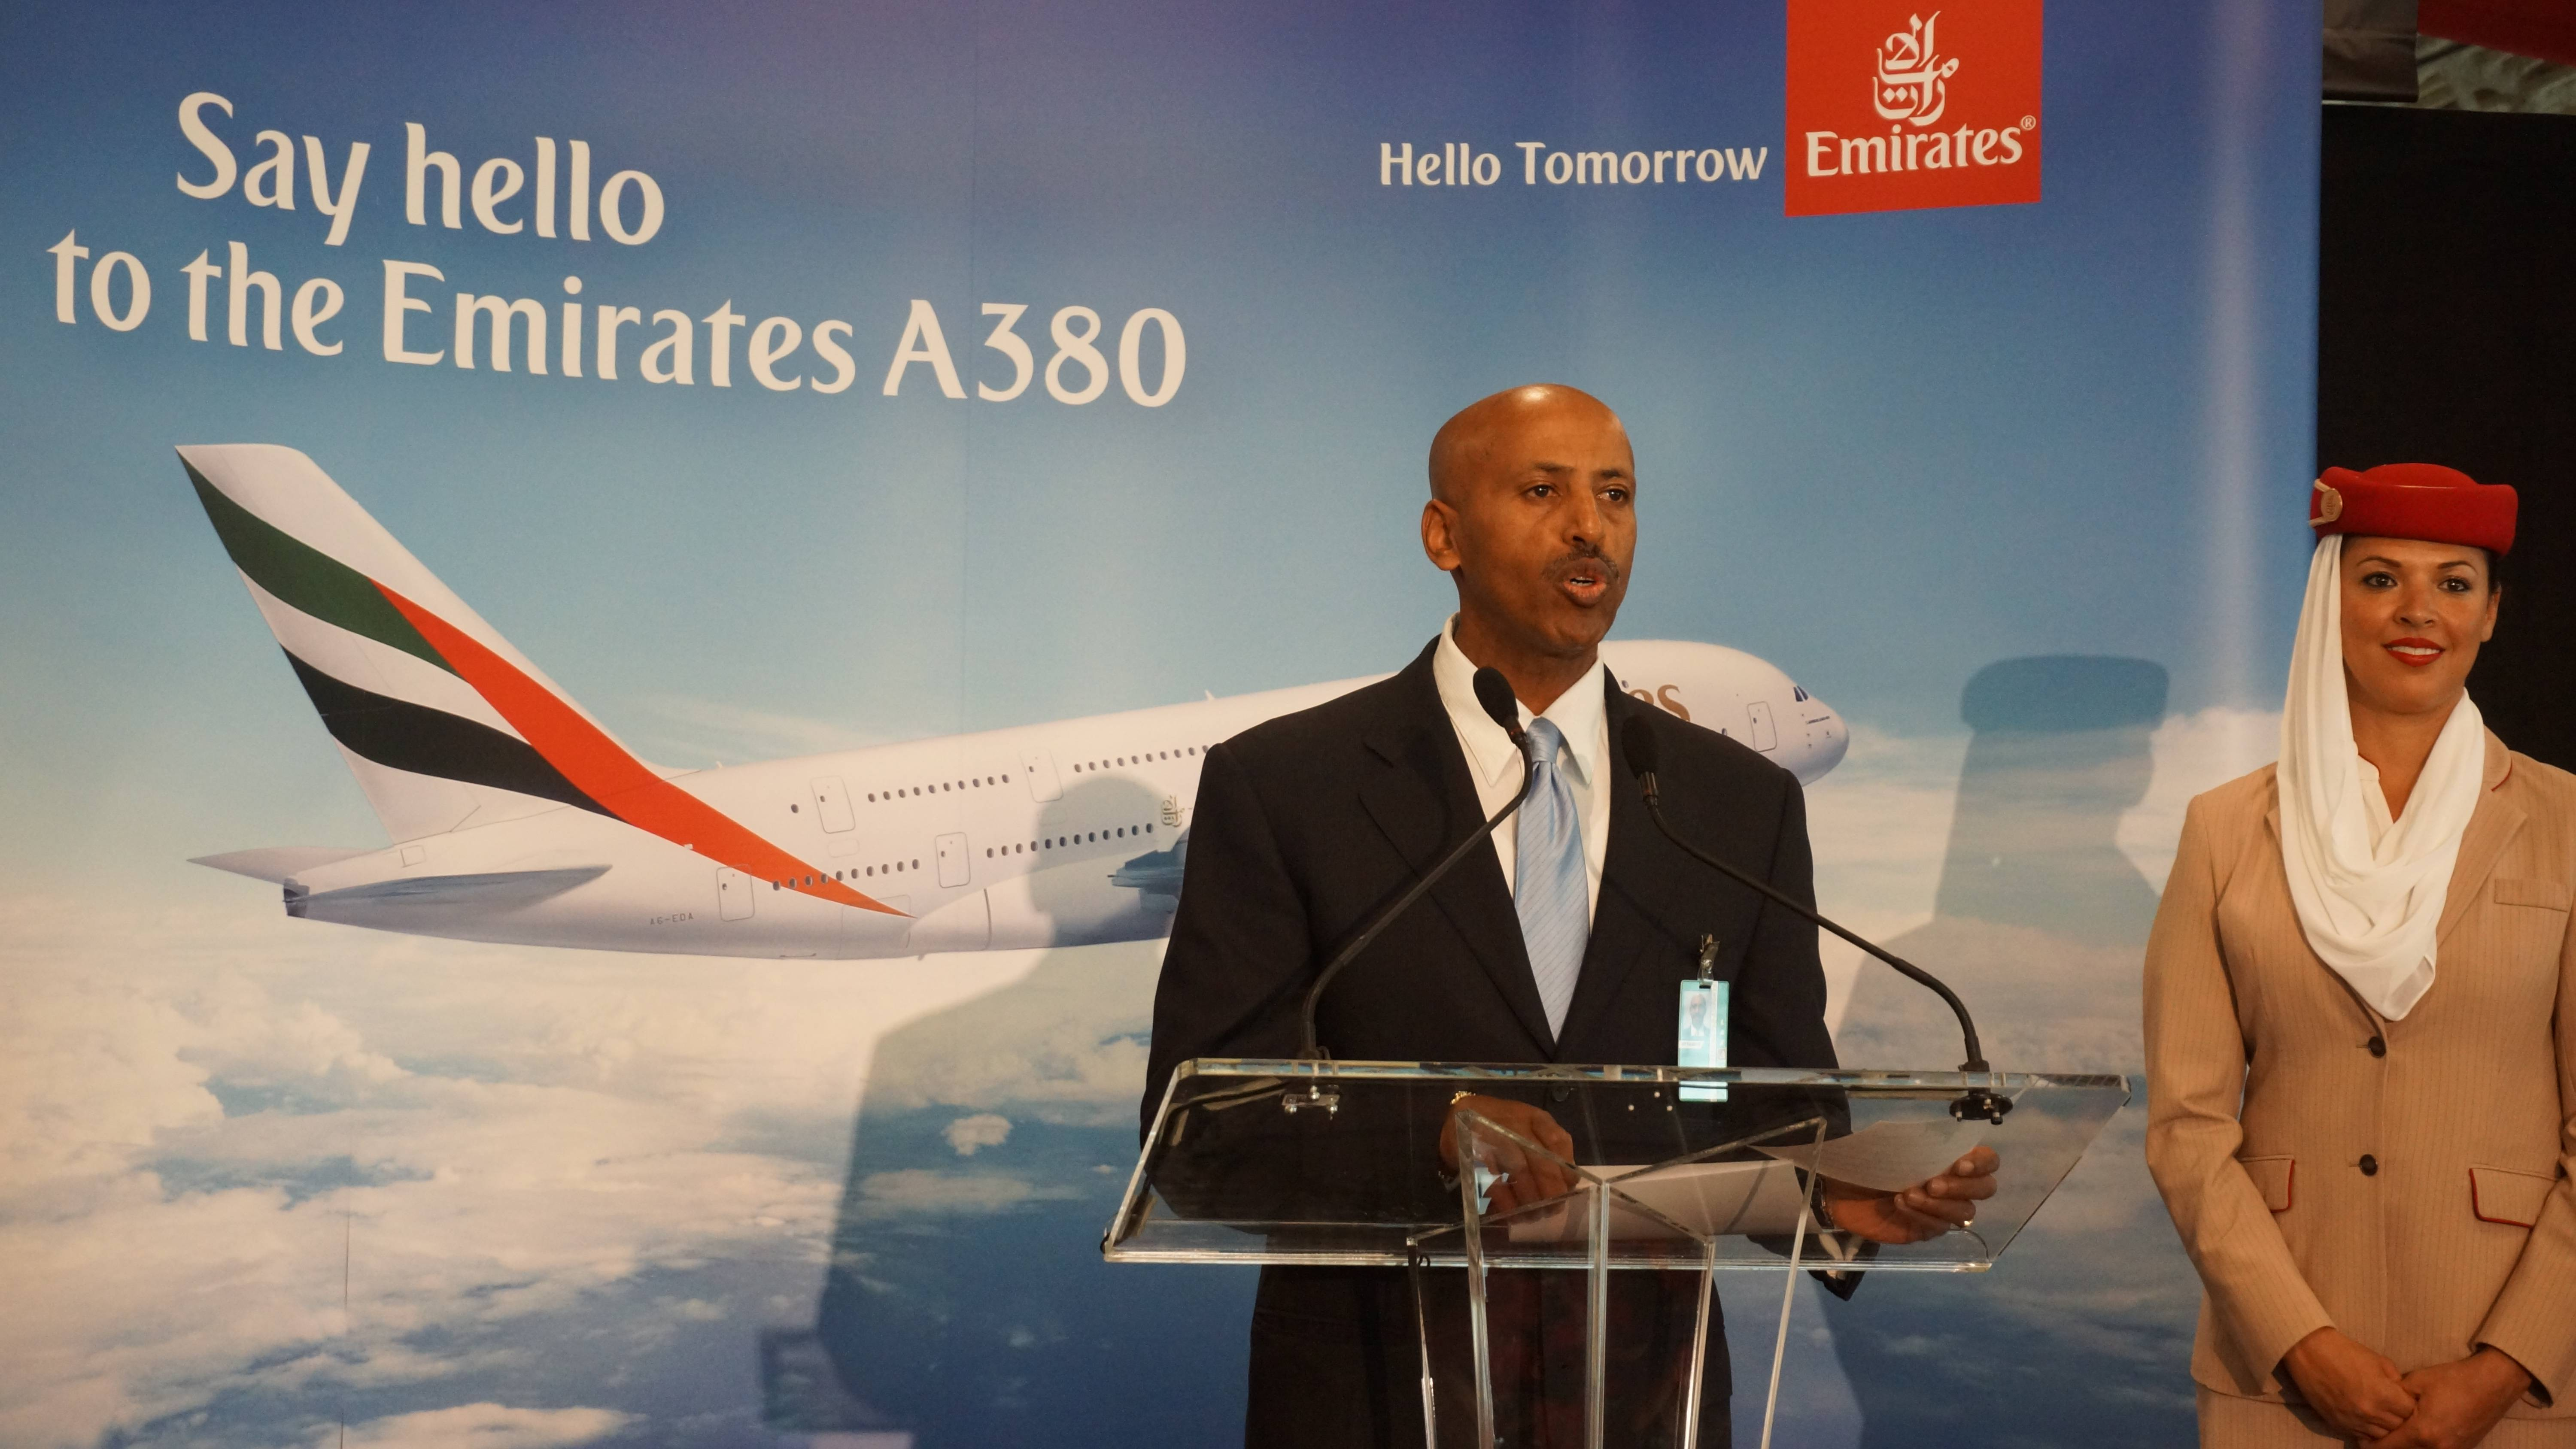 Samson Mengistu Deputy Executive Director for Administration at Los Angeles World Airports Welcomes the Emirates' A380